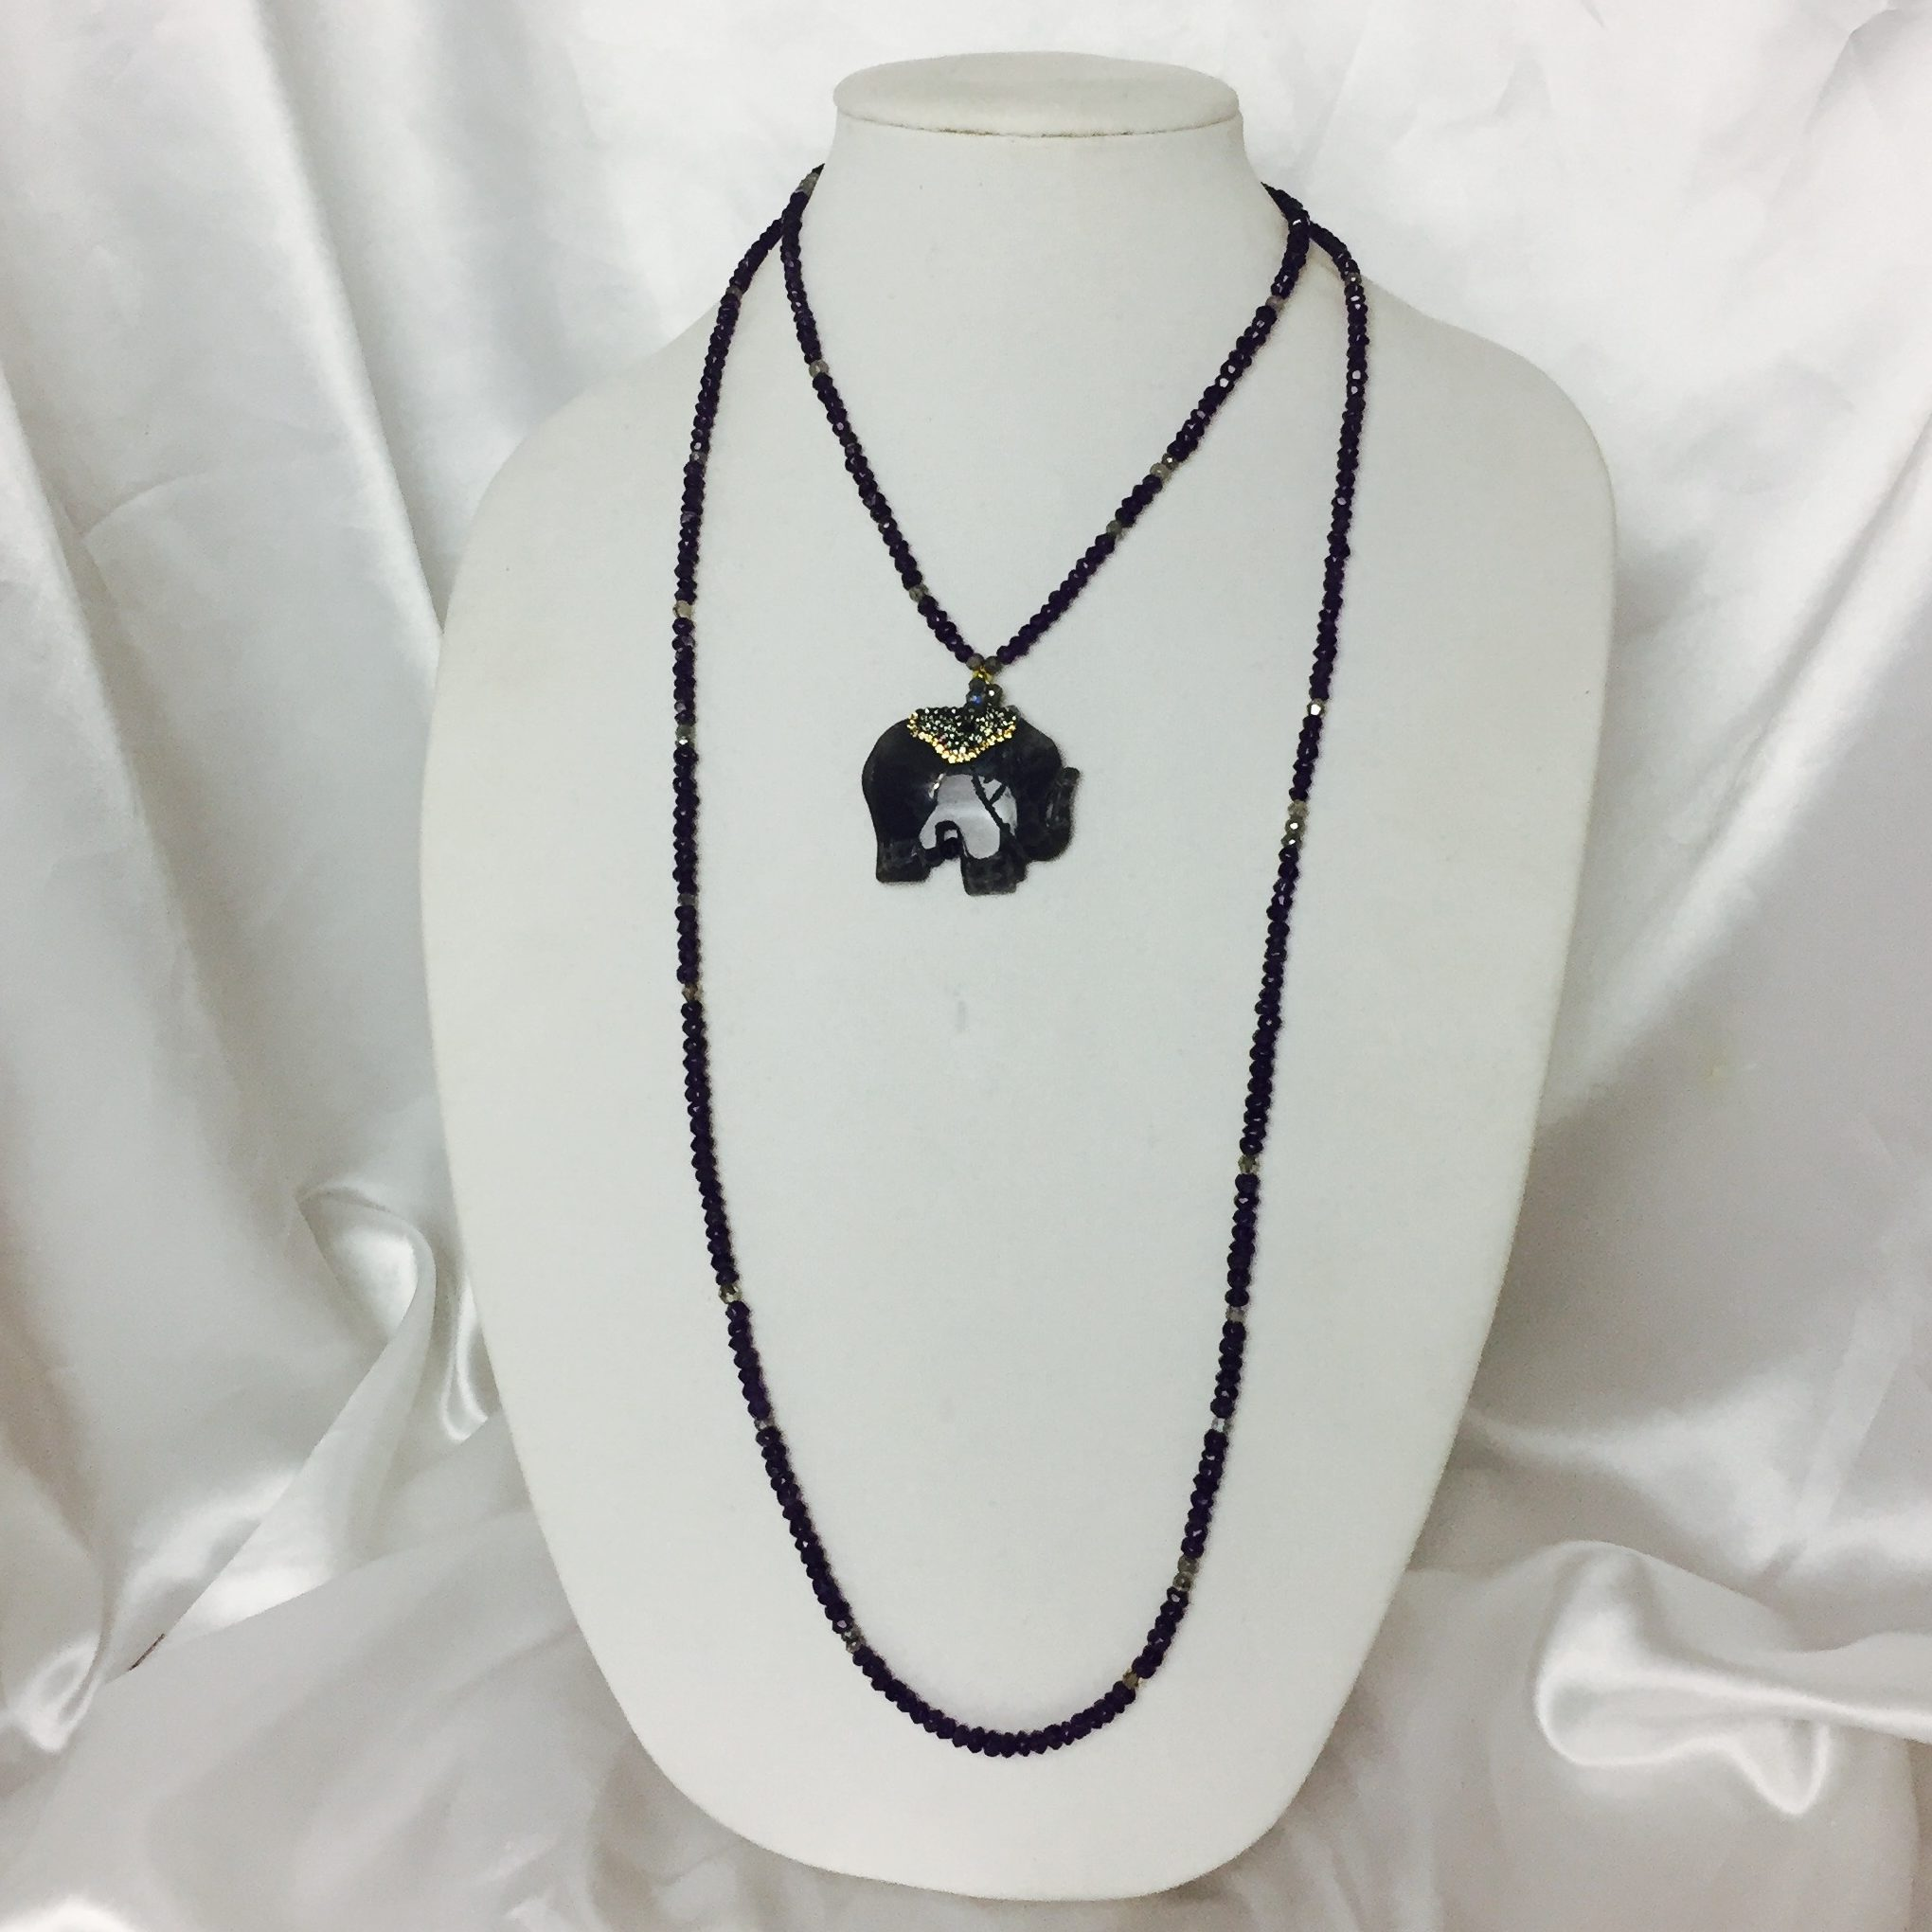 Amethyst, Labradorite and Crystal Necklace